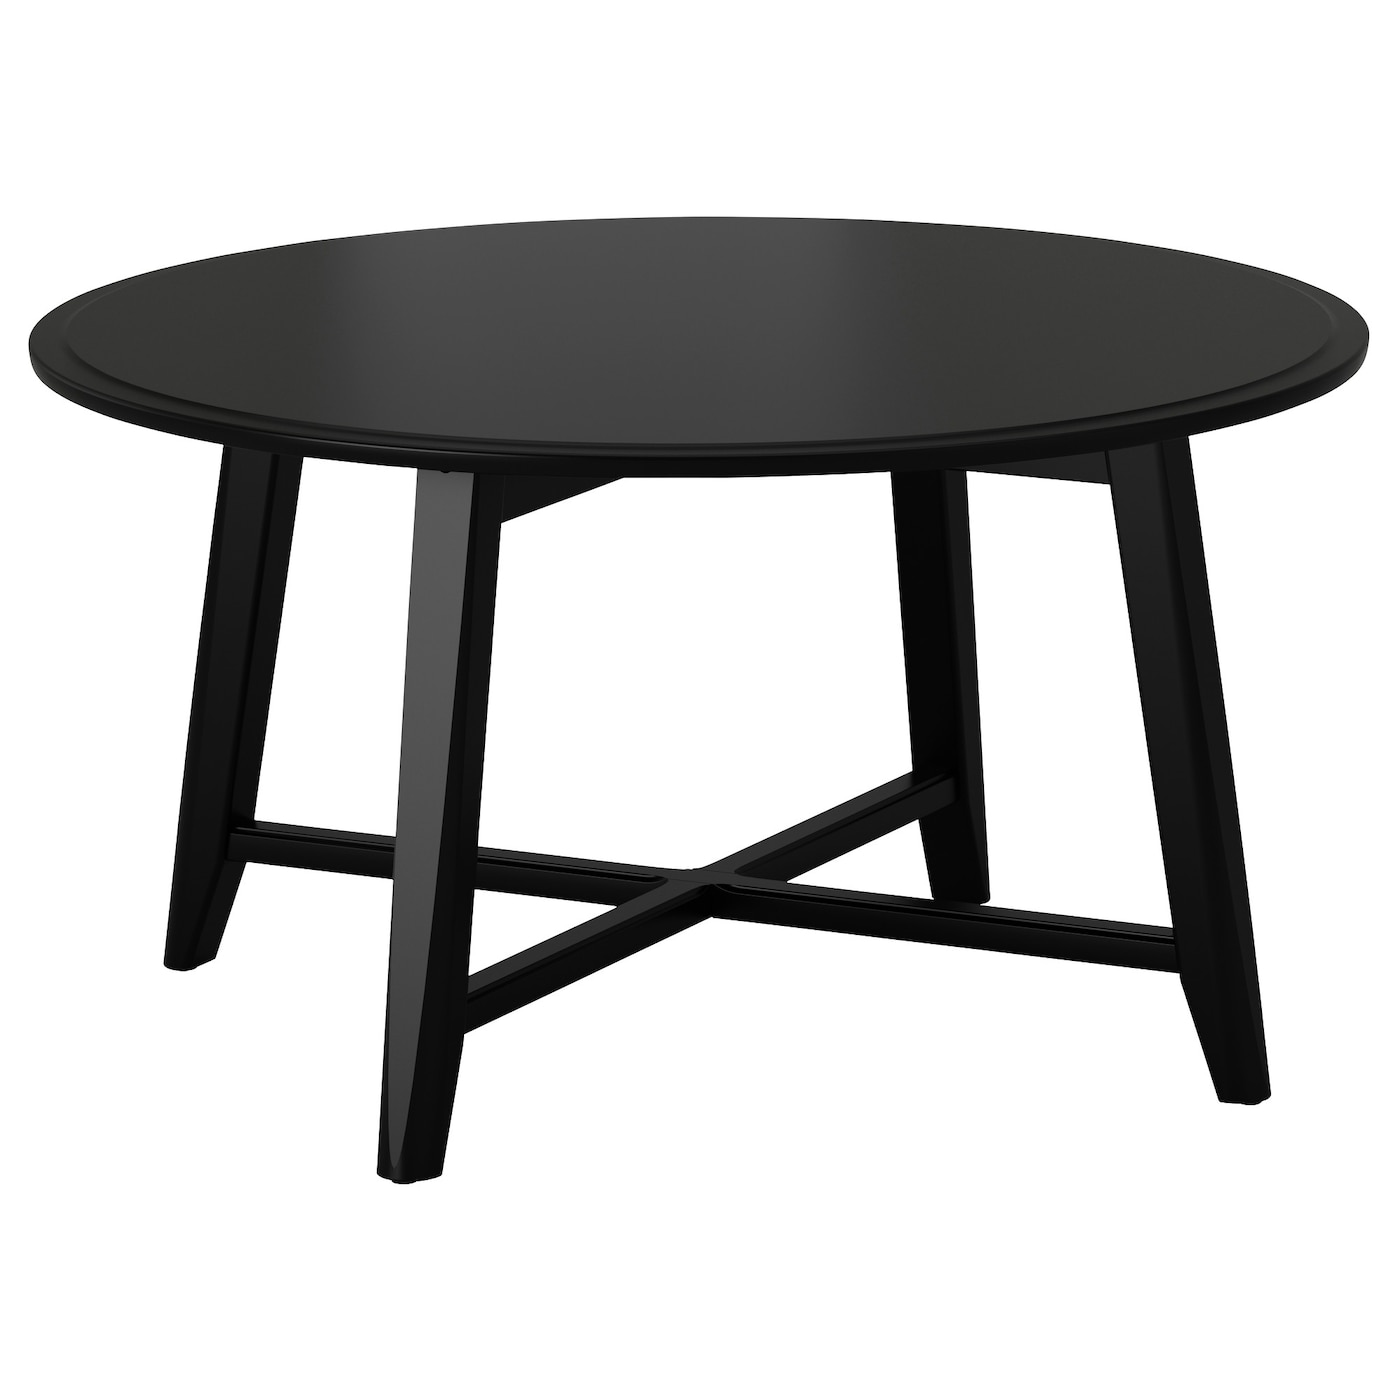 Kragsta coffee table black 90 cm ikea for Black wood coffee table and end tables